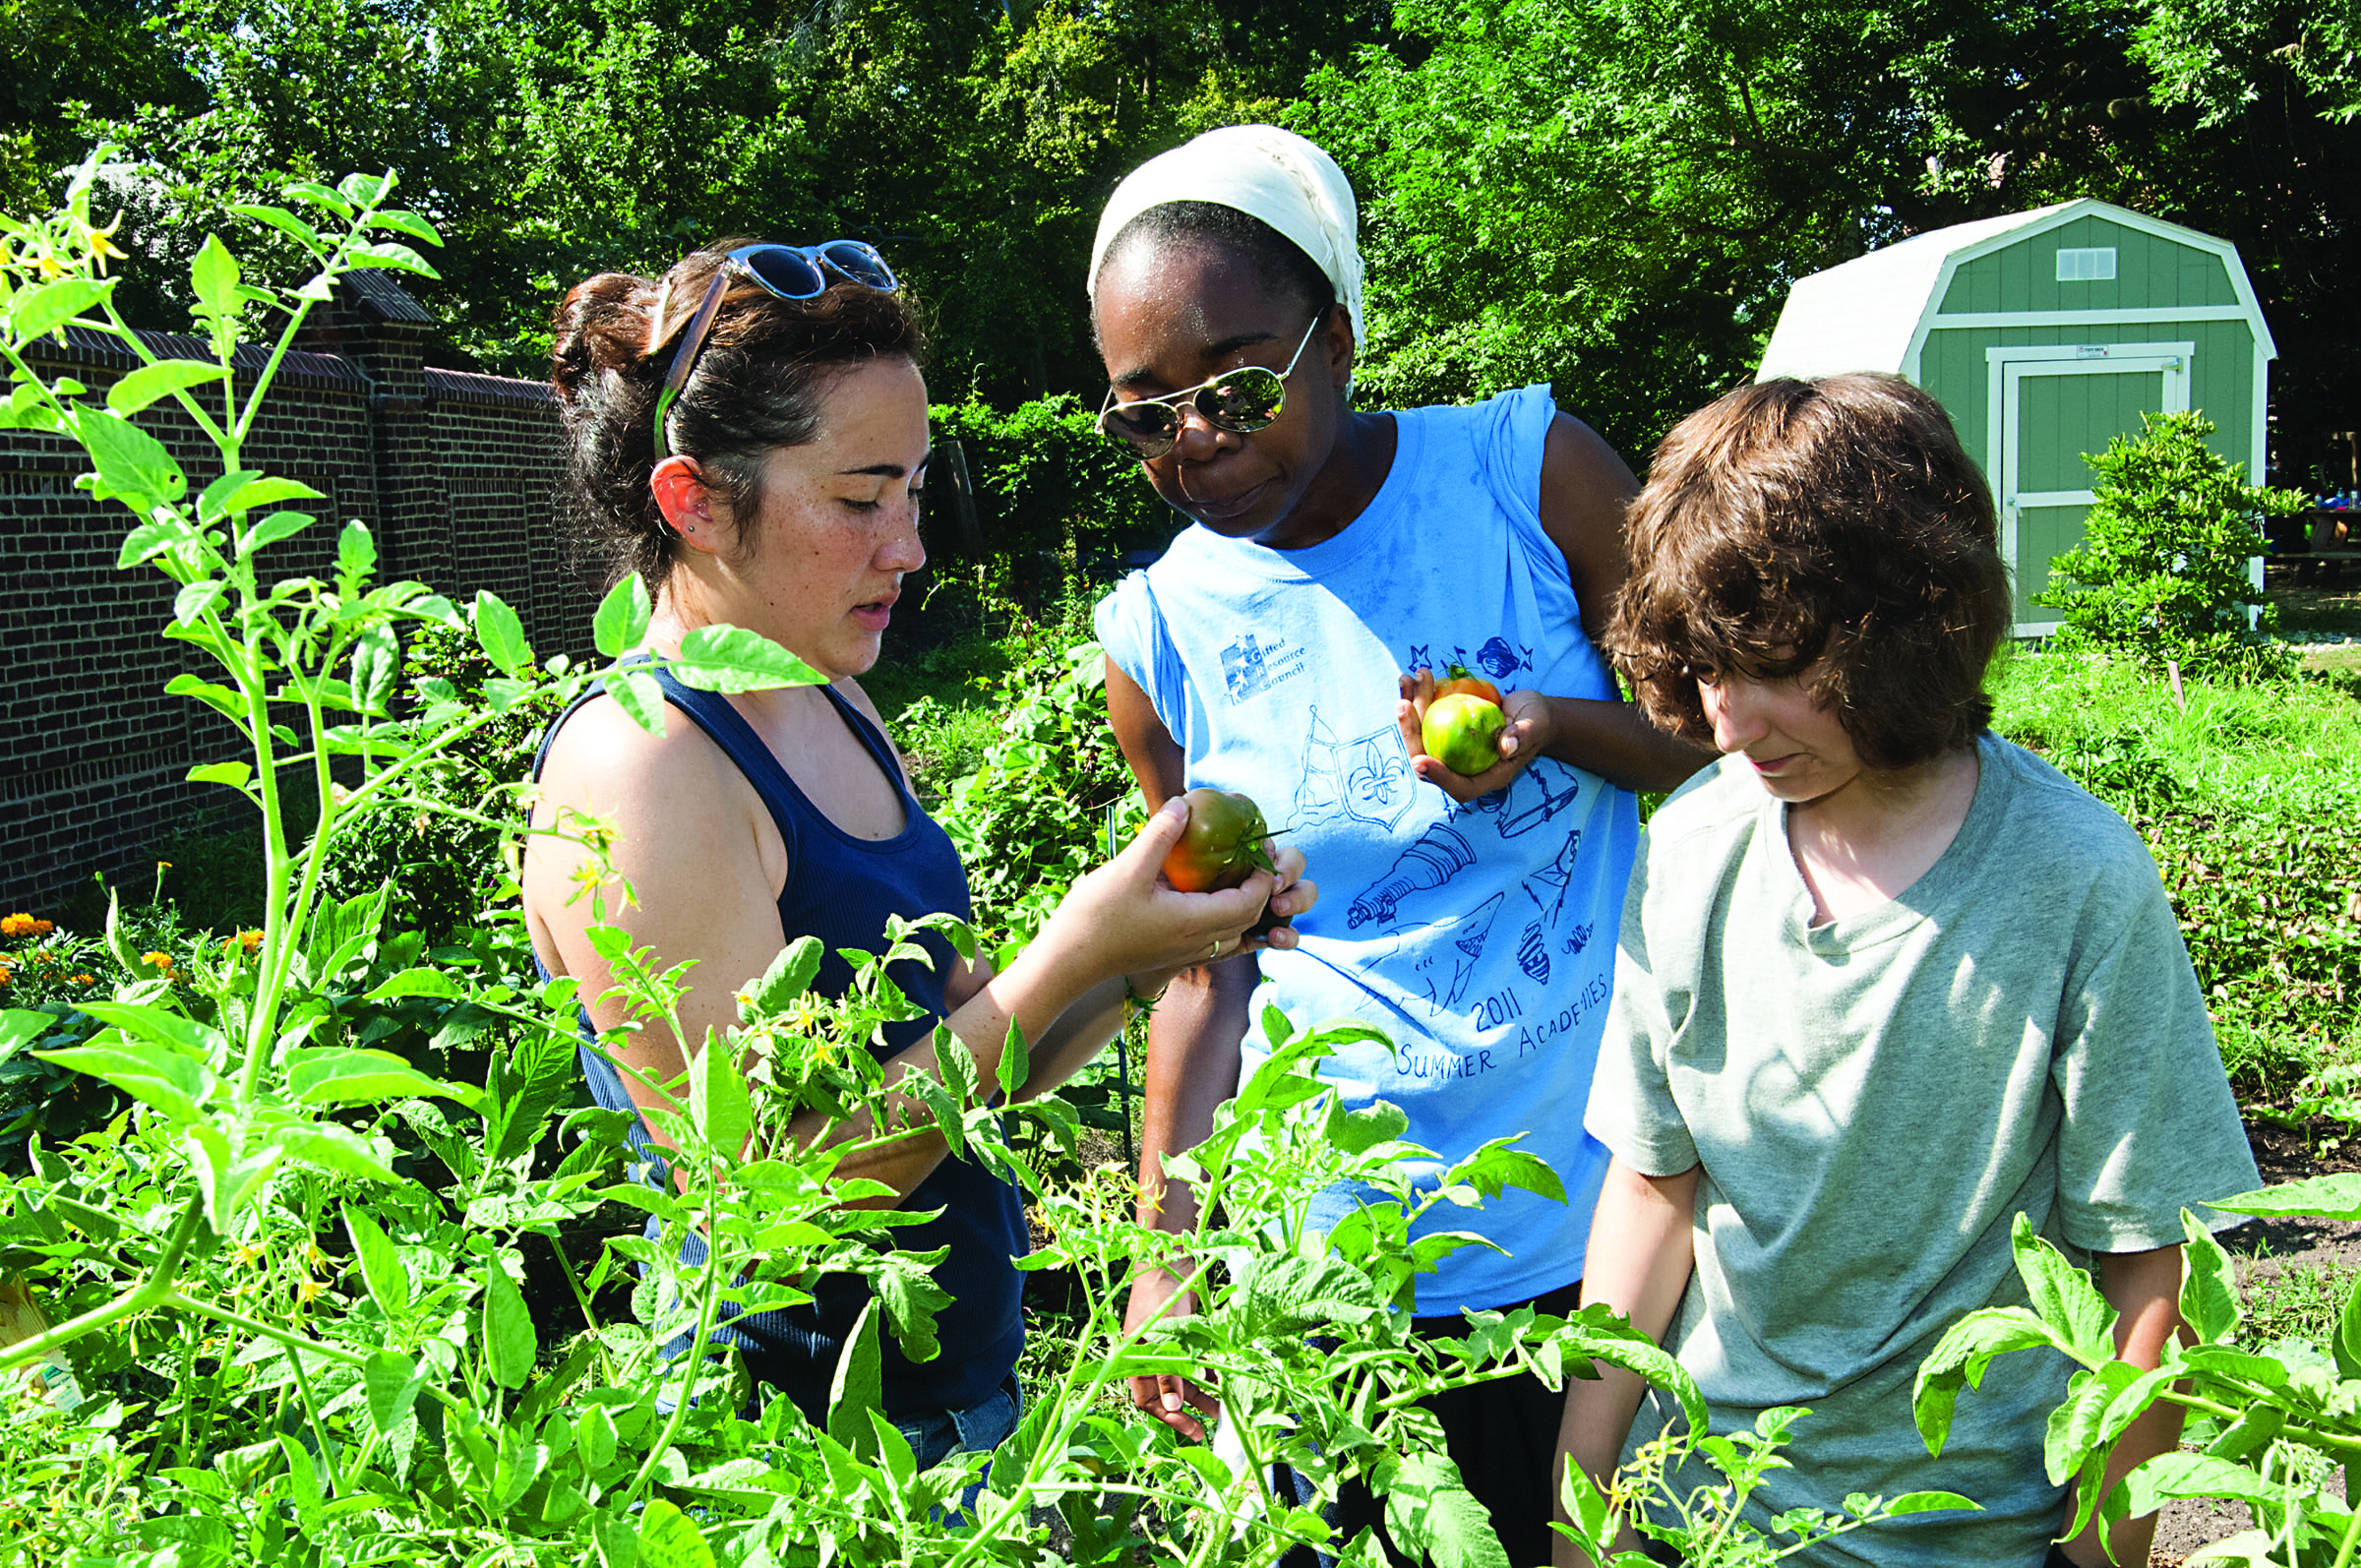 Children at the Kumquat Summer camp learn from students about ecologically-sound farming practices.